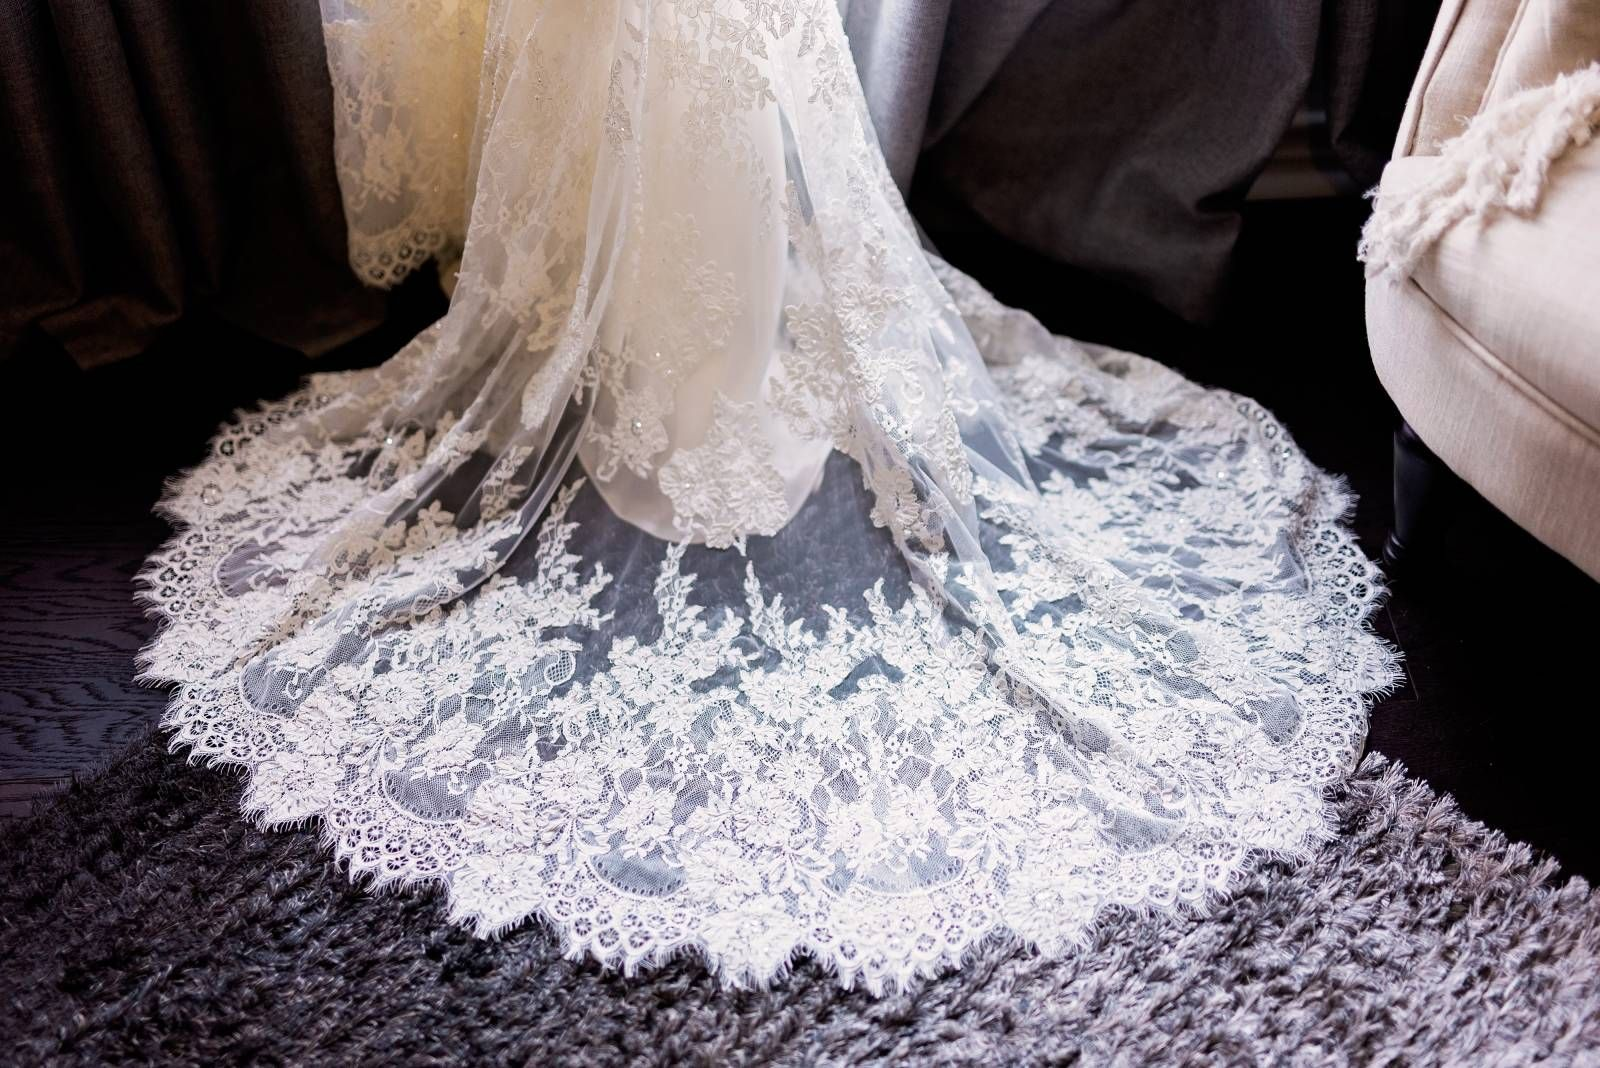 Top 5 Places to Buy a Discounted Wedding Dress in San